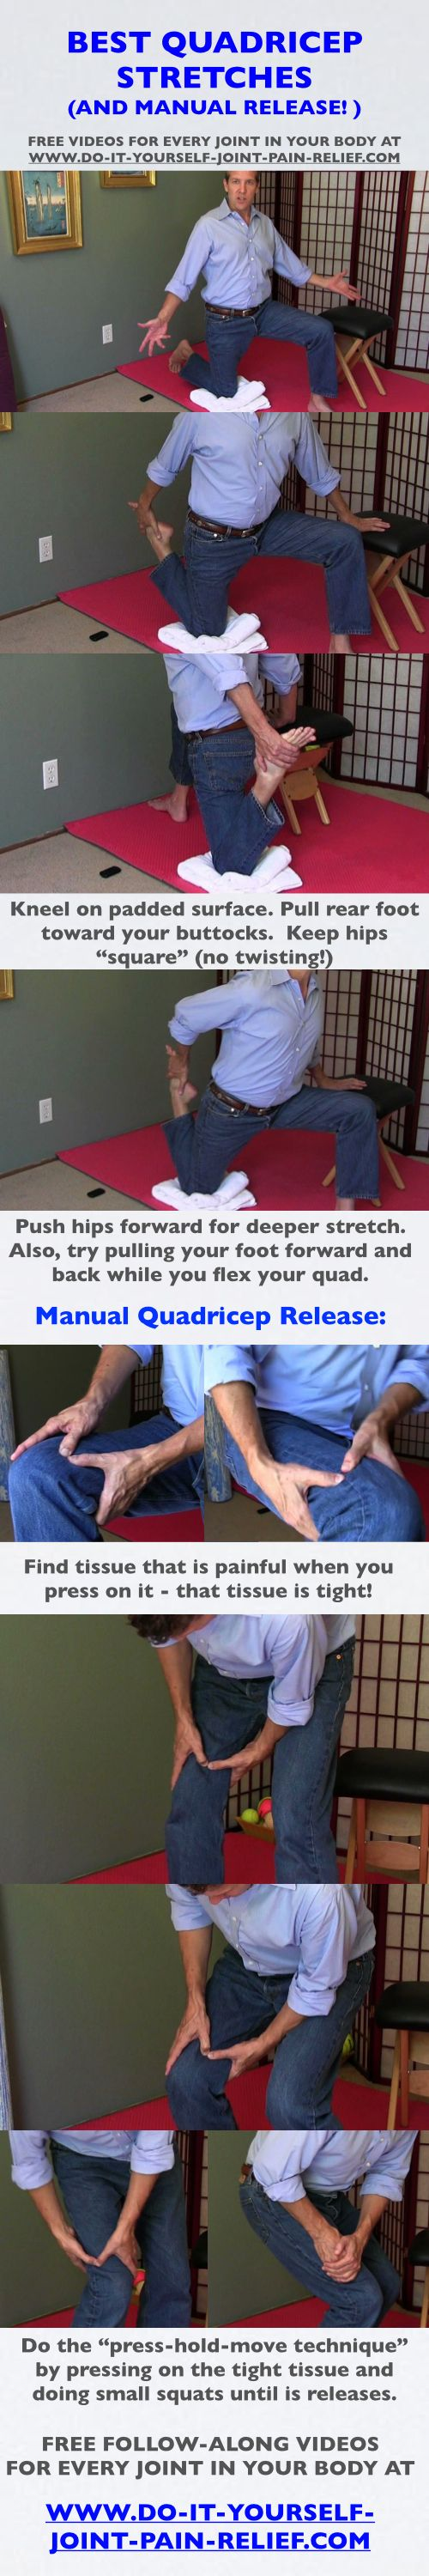 Best Quadricep Stretches (and manual quadricep release!)